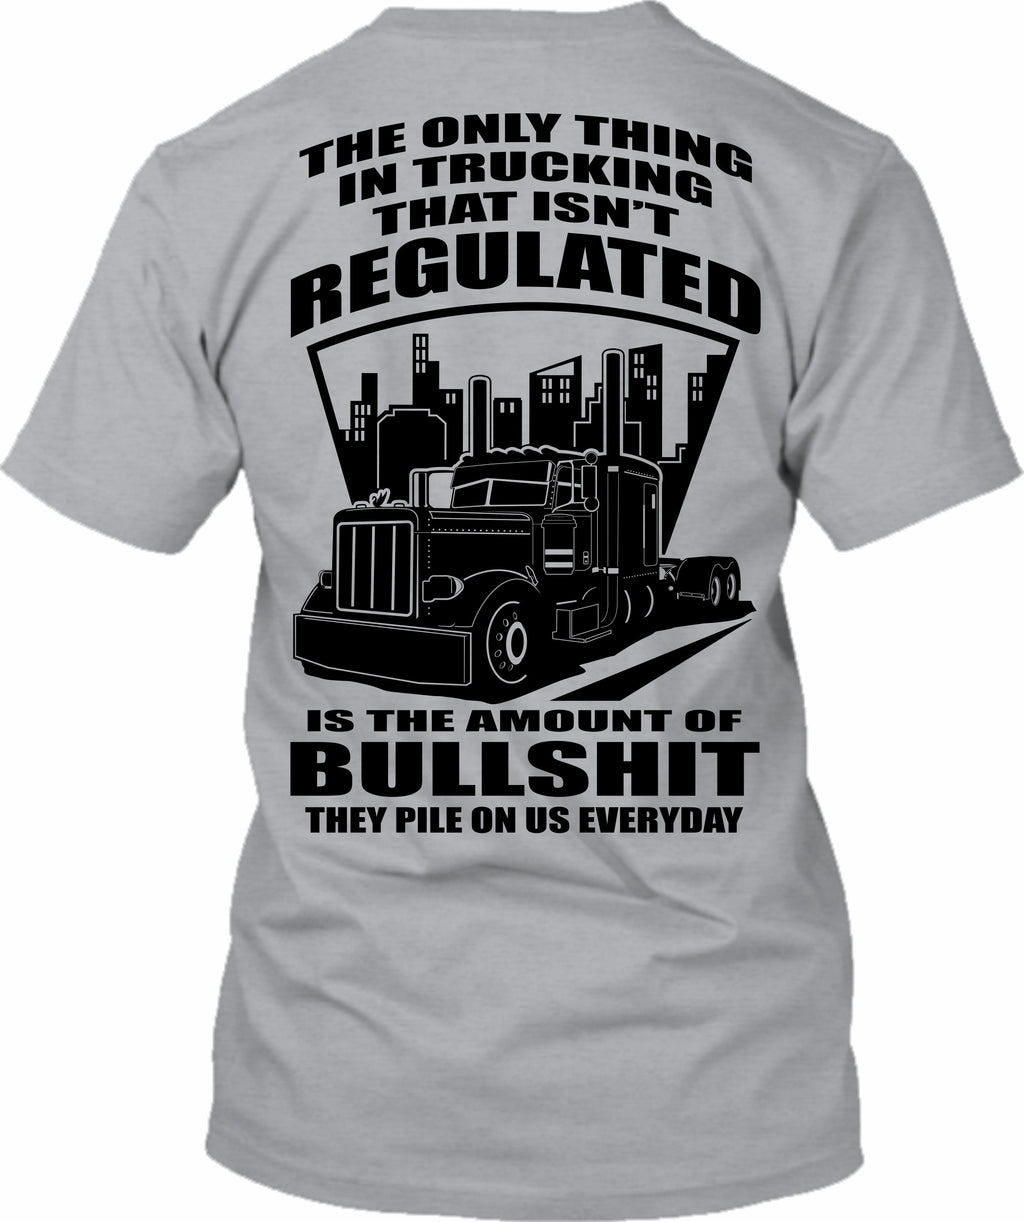 The Only Thing in Trucking Regulated Bullshit Pete